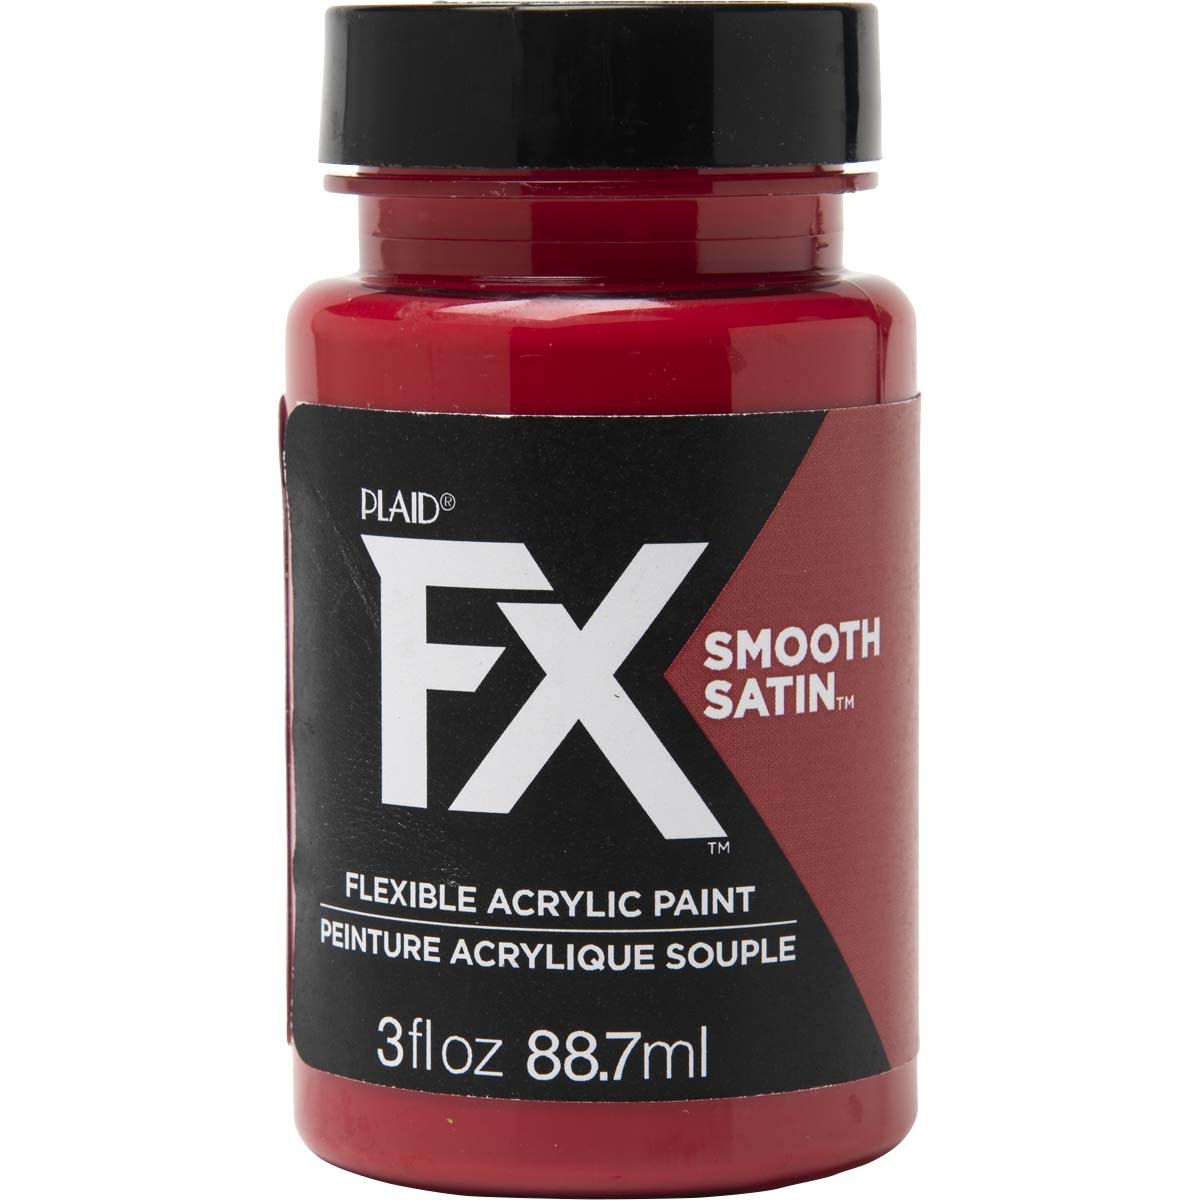 PlaidFX Smooth Satin Flexible Acrylic Paint - Crimson Crusade, 3 oz. - 36841